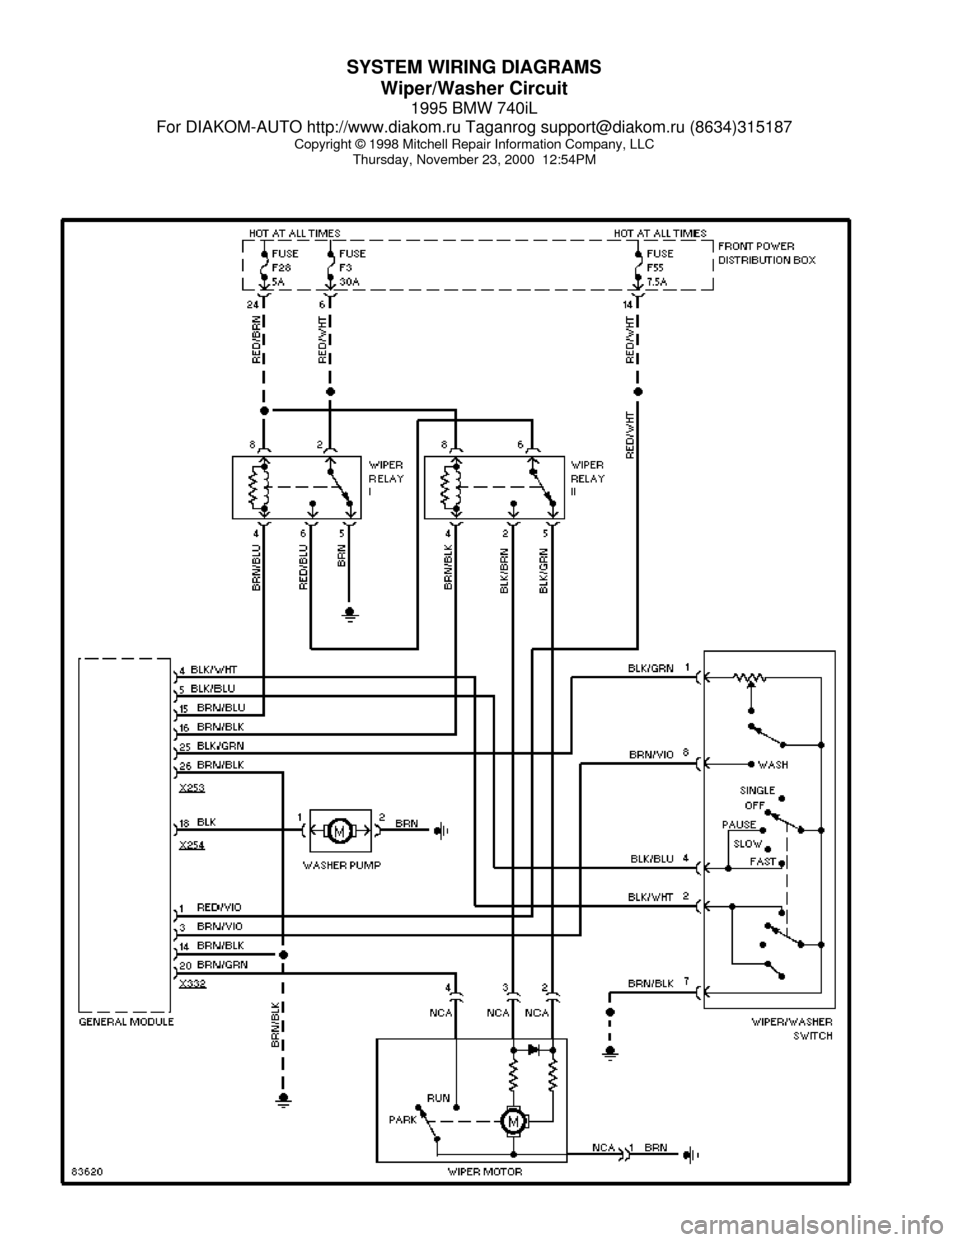 Bmw 540i Cluster Wiring Diagram